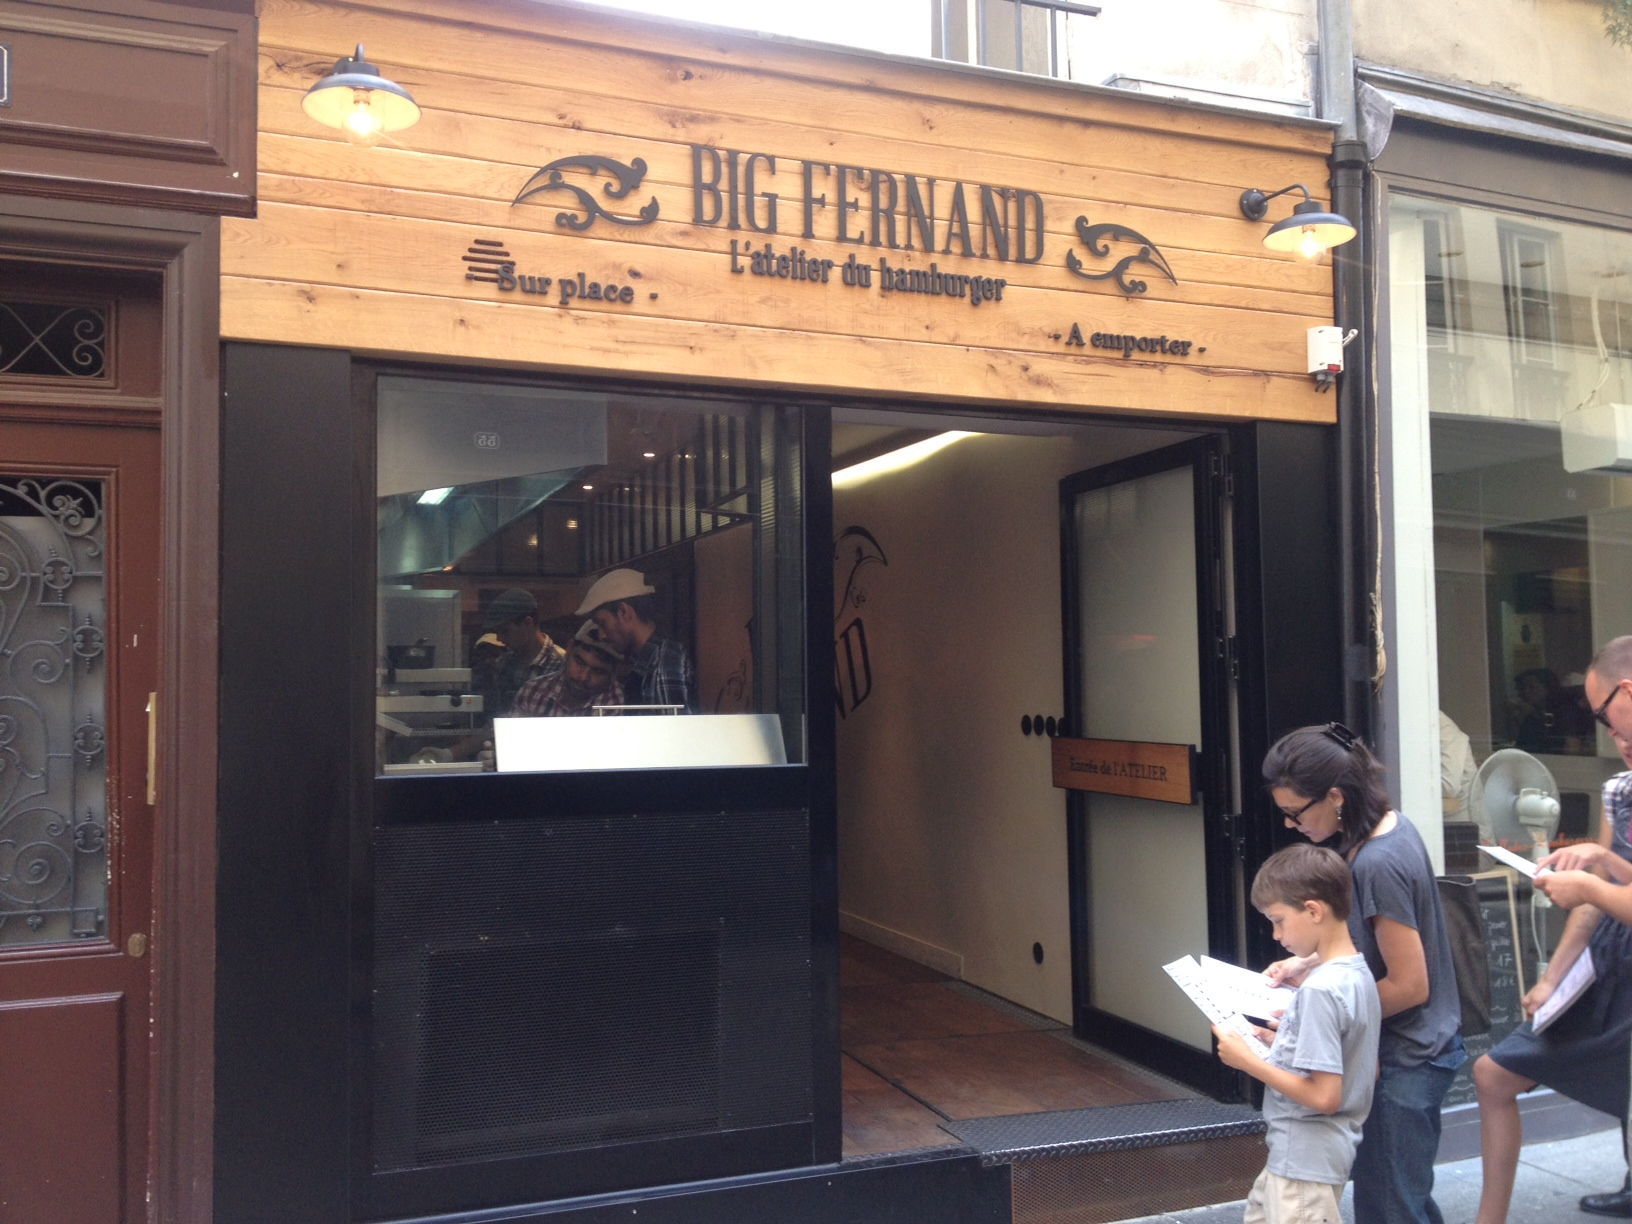 Big Fernand à Paris 02